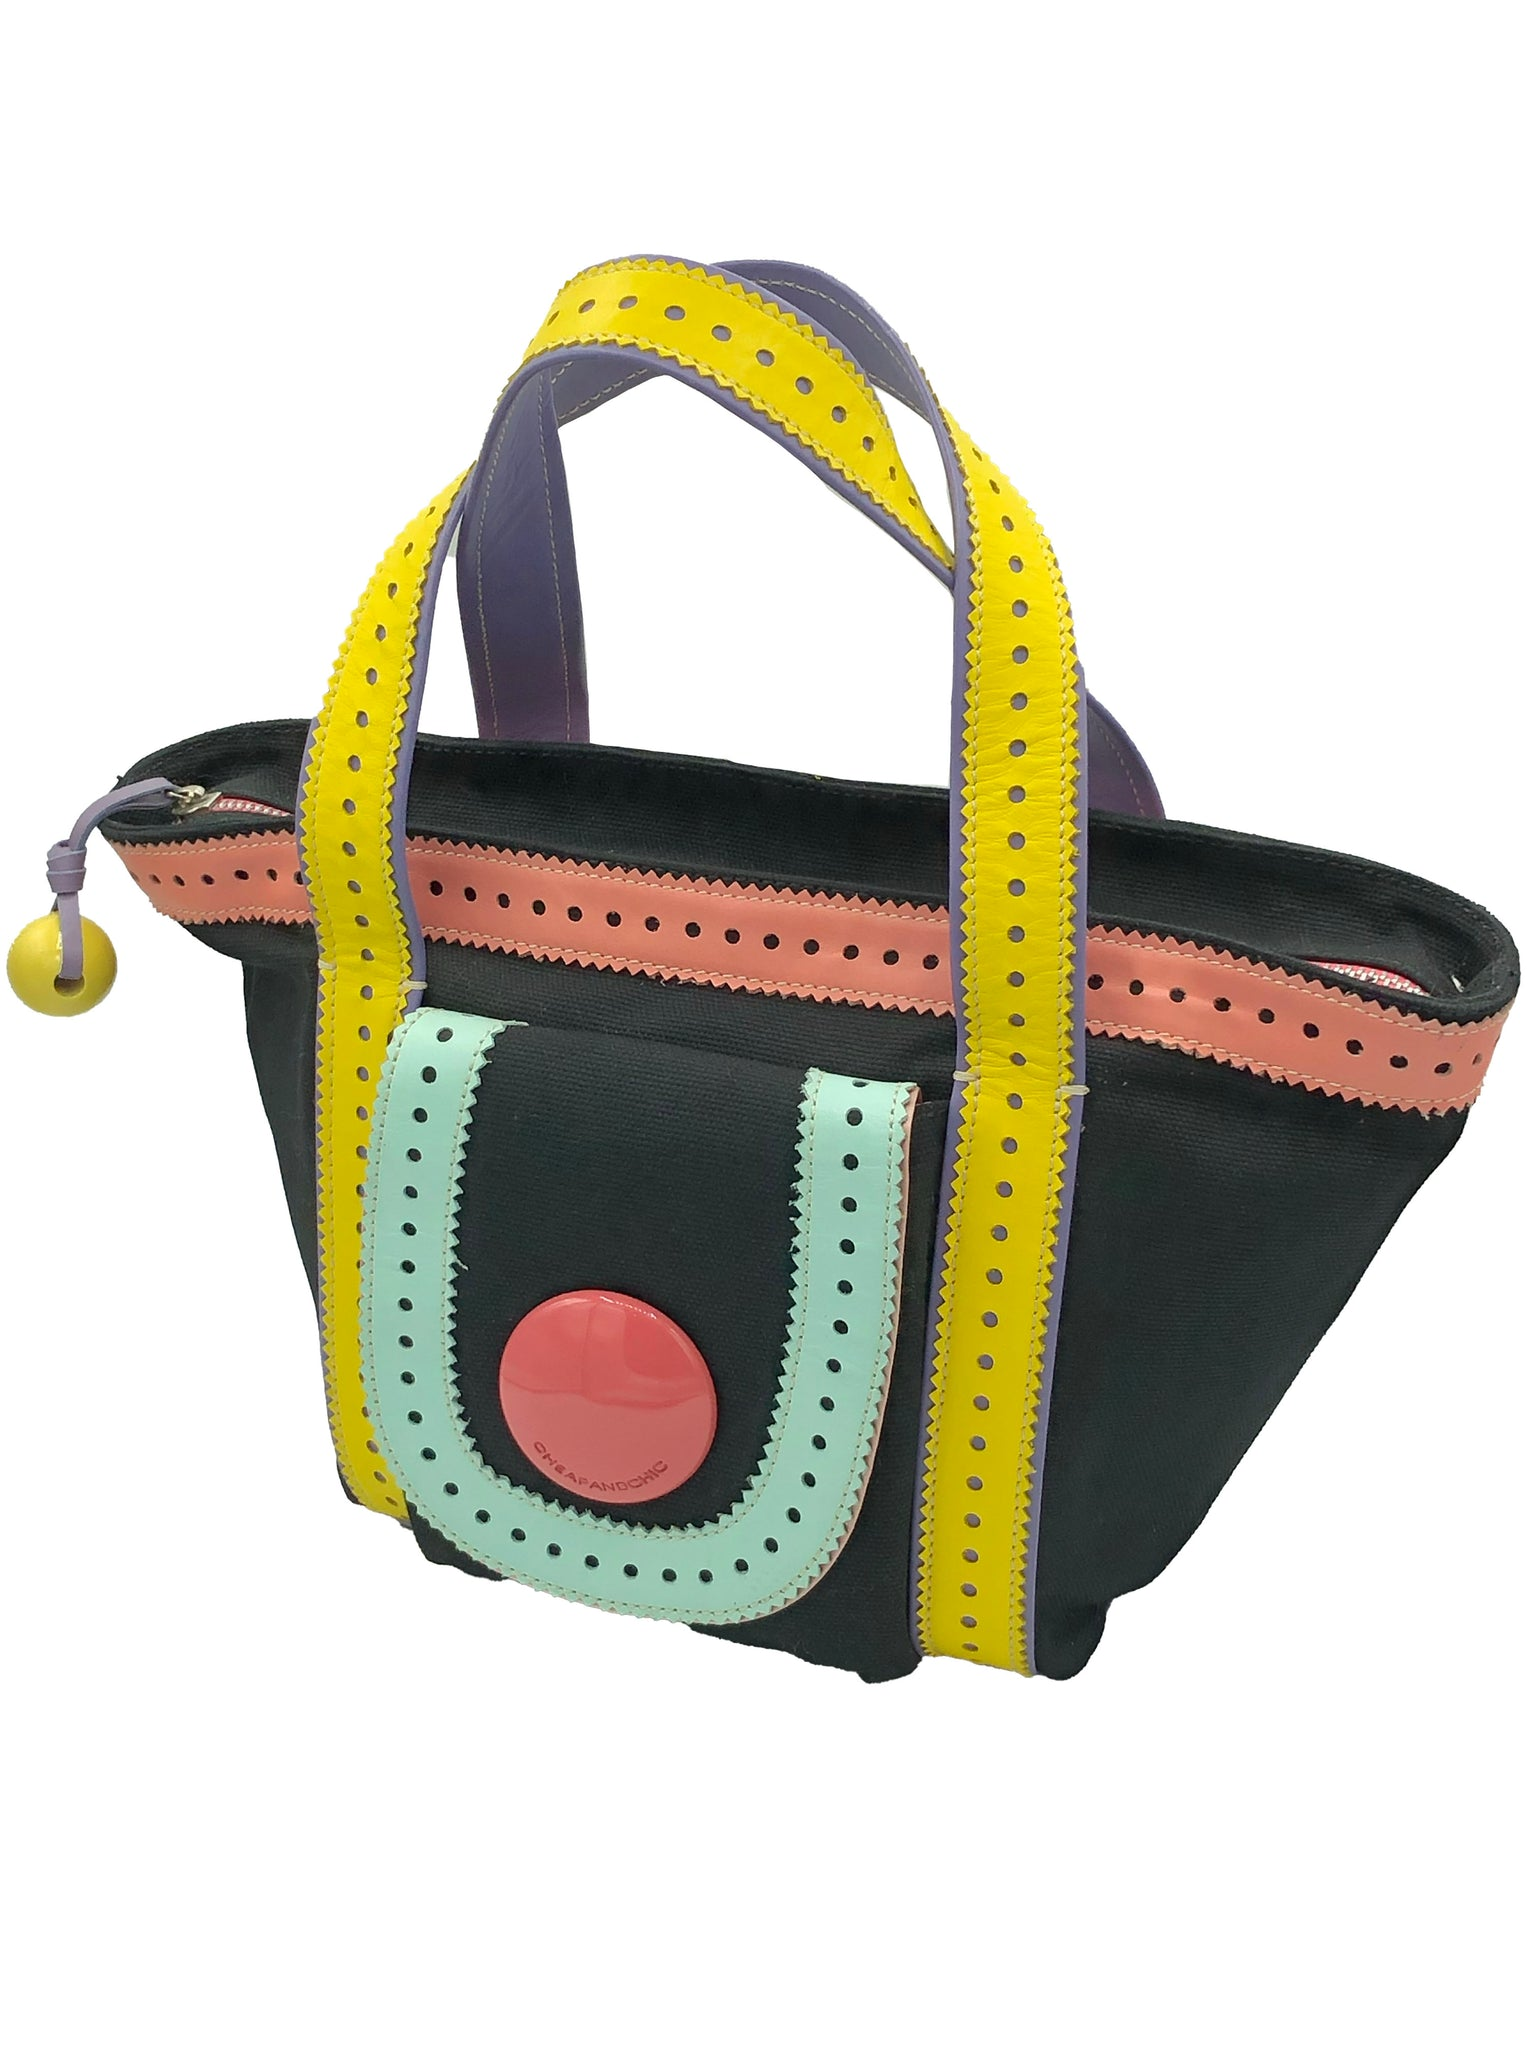 Moschino Cheap and Chic 90s Black and Rainbow Mini Canvas Tote SIDE 2 of 5